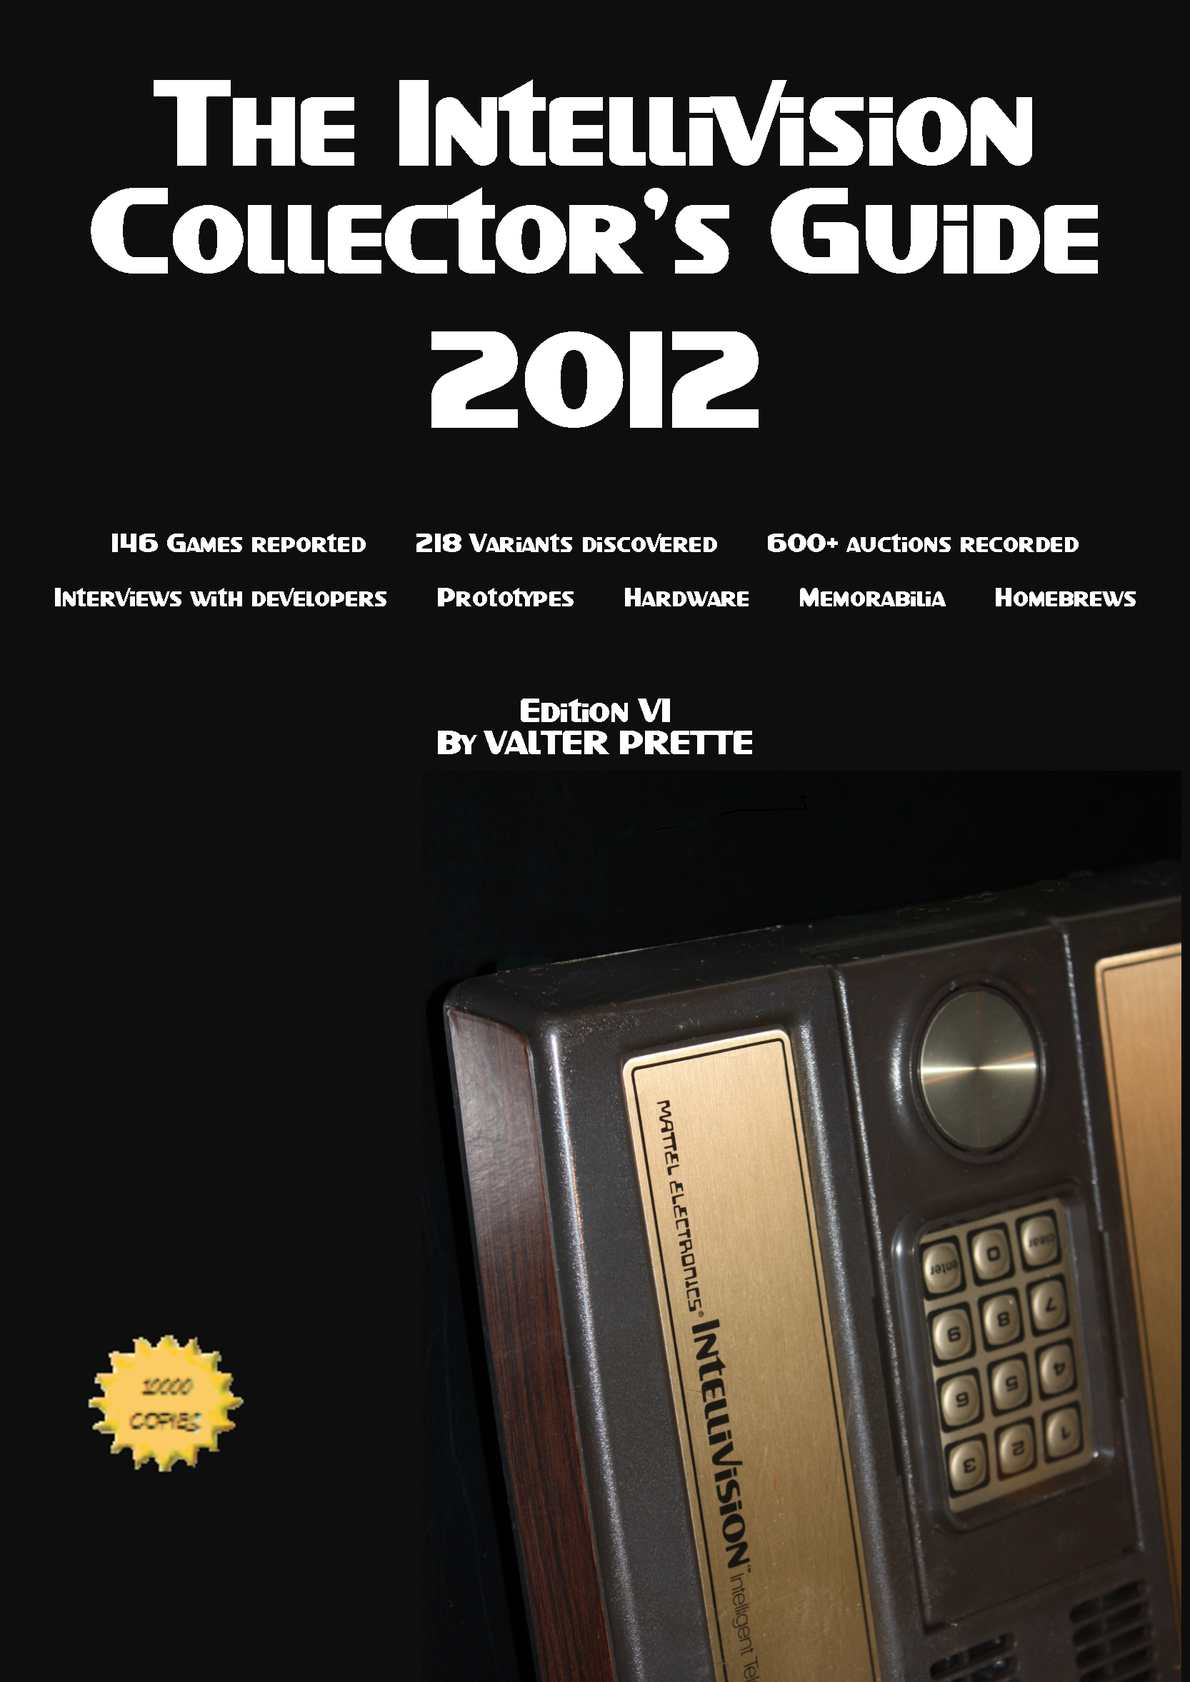 Guide 2012 Complete